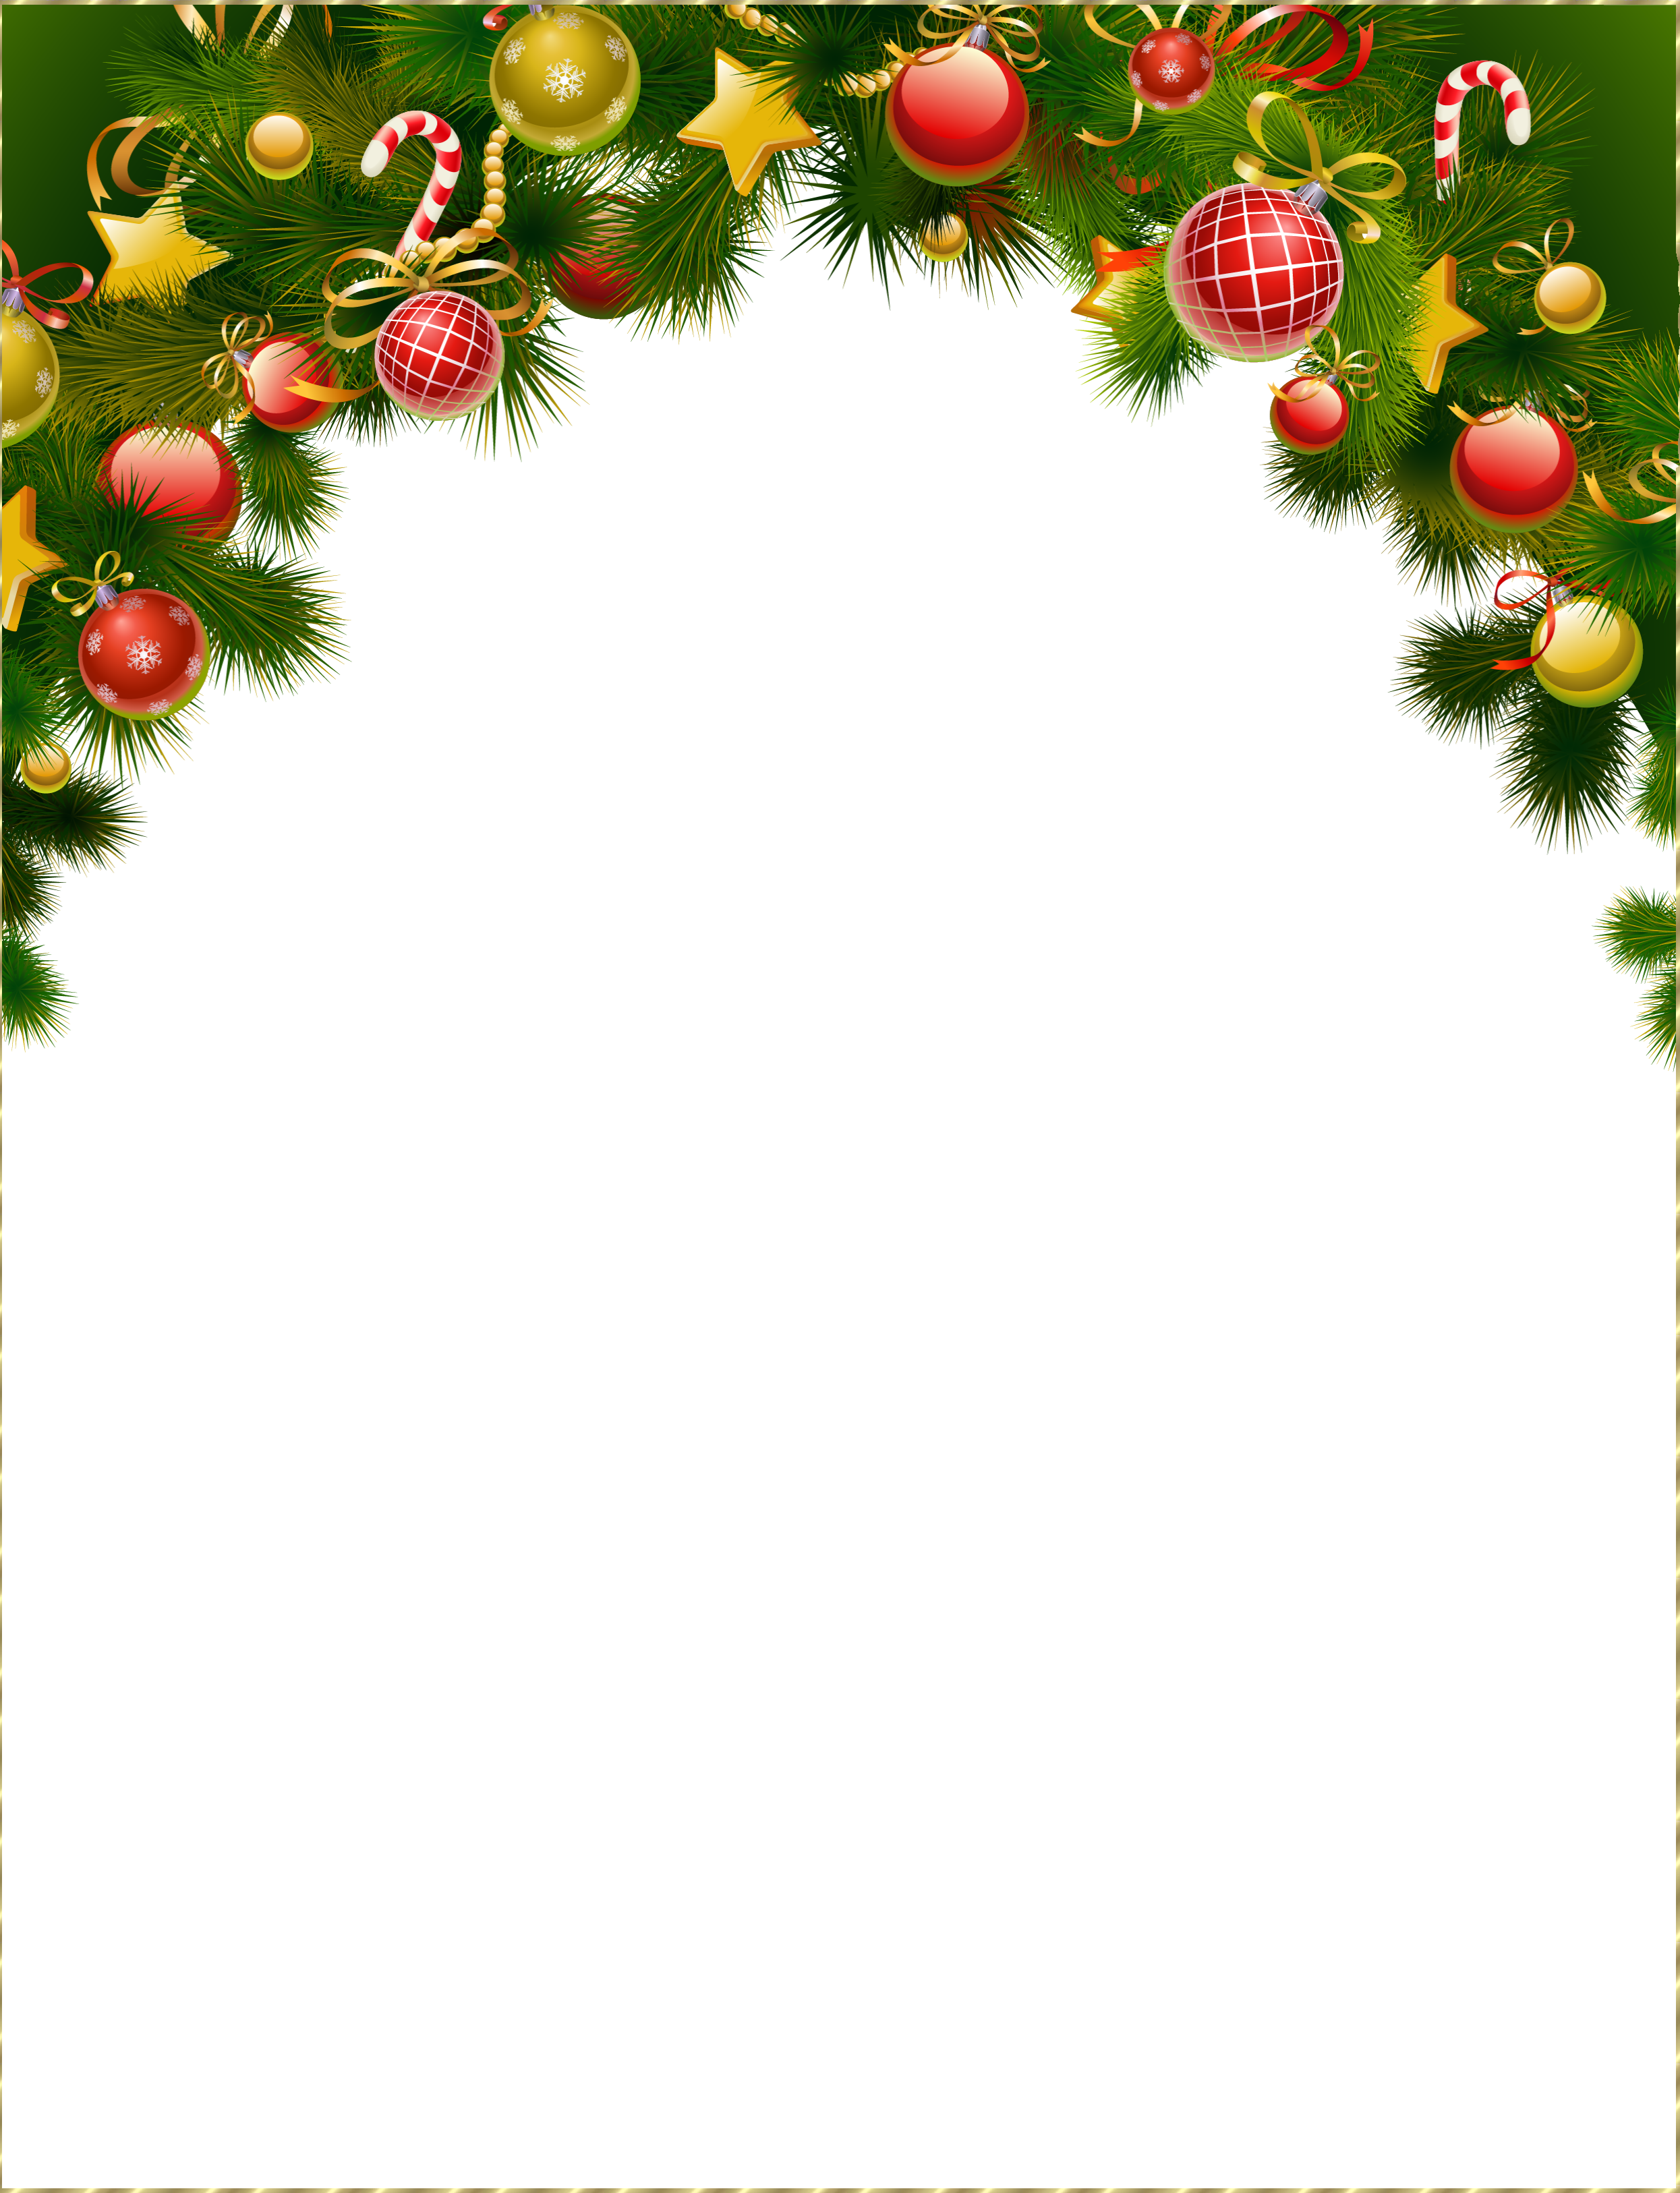 Christmas Frame Png image gallery